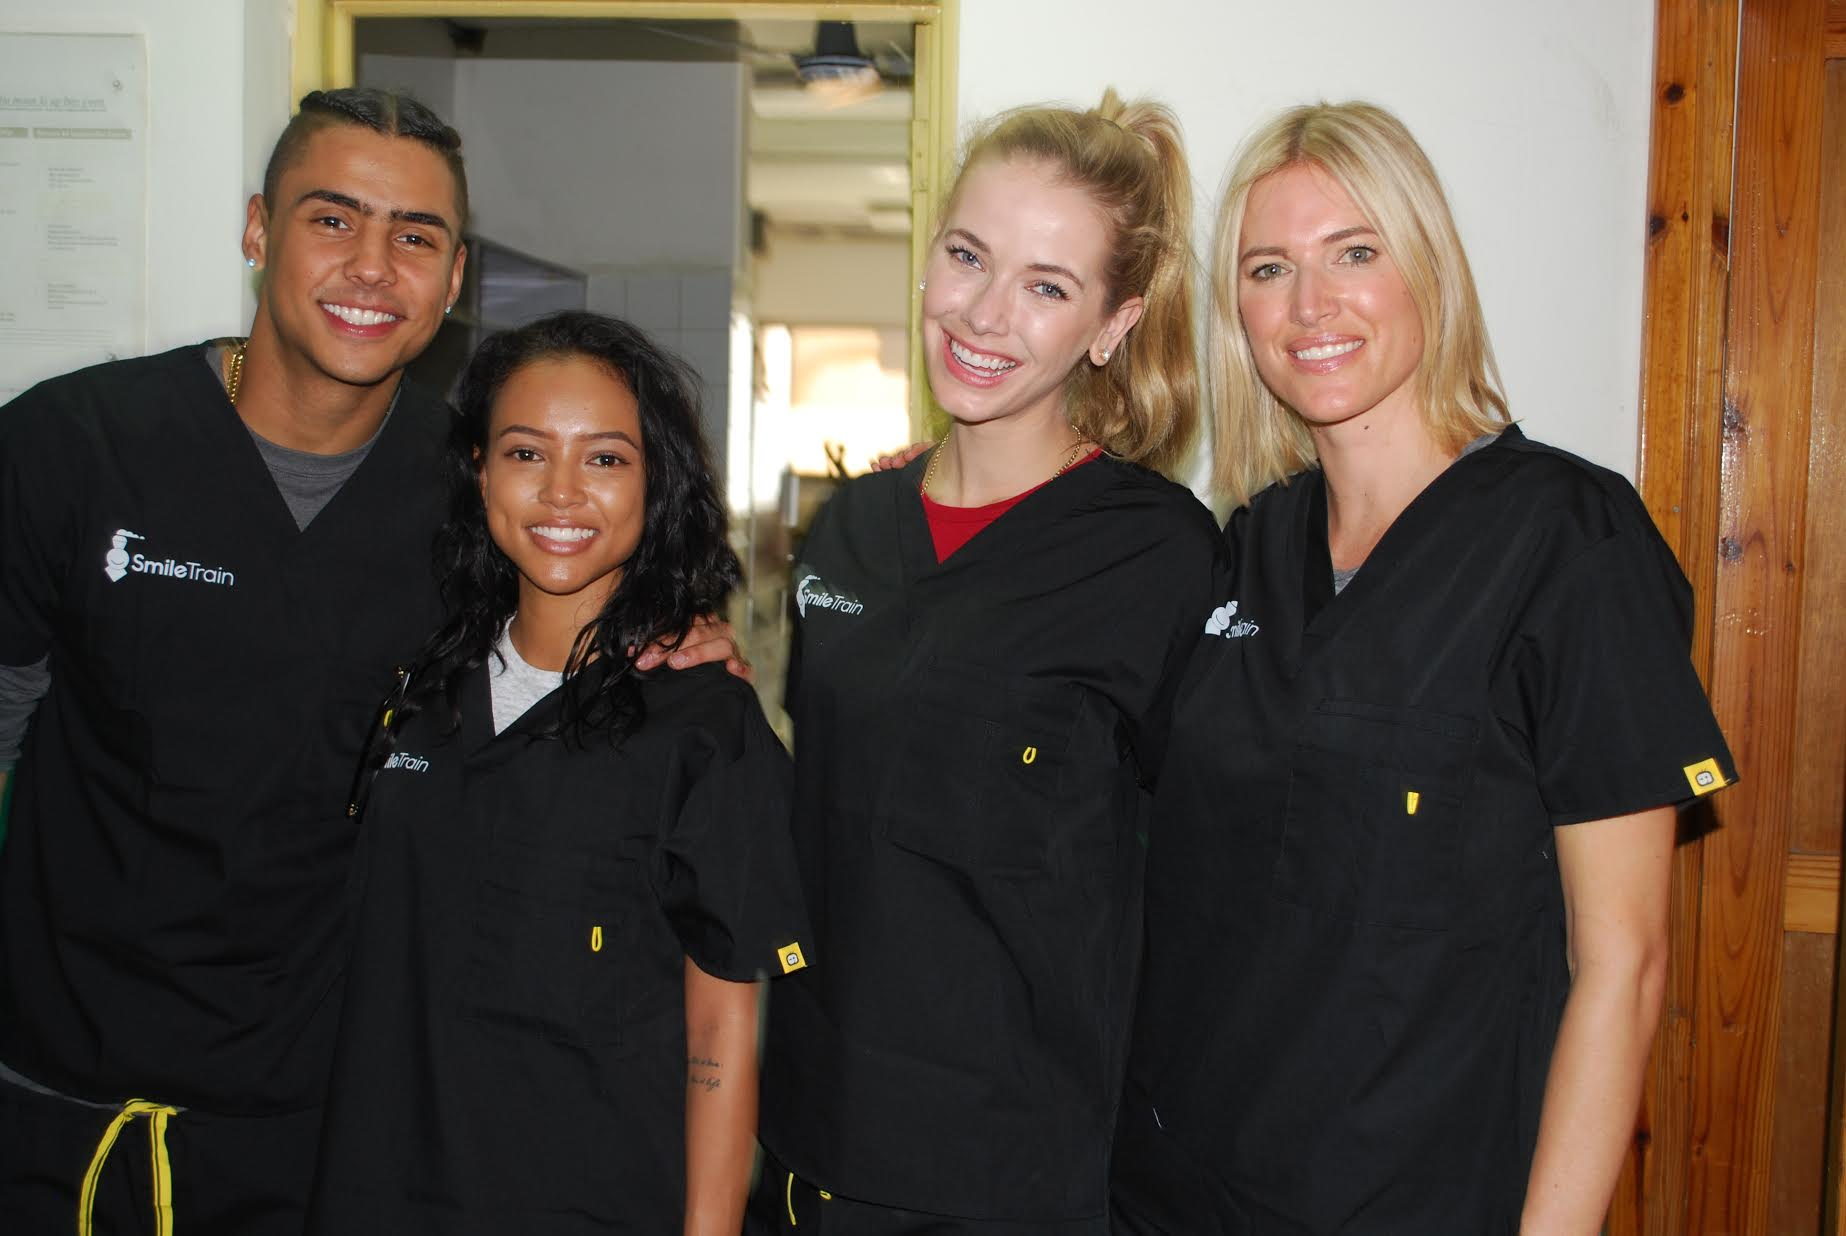 Quincy Brown, Karrueche Tran, Miss USA Olivia Jordan and Kristen Taekman were dressed and ready to see Smile Train's local surgeons perform life-changing cleft surgeries firsthand.